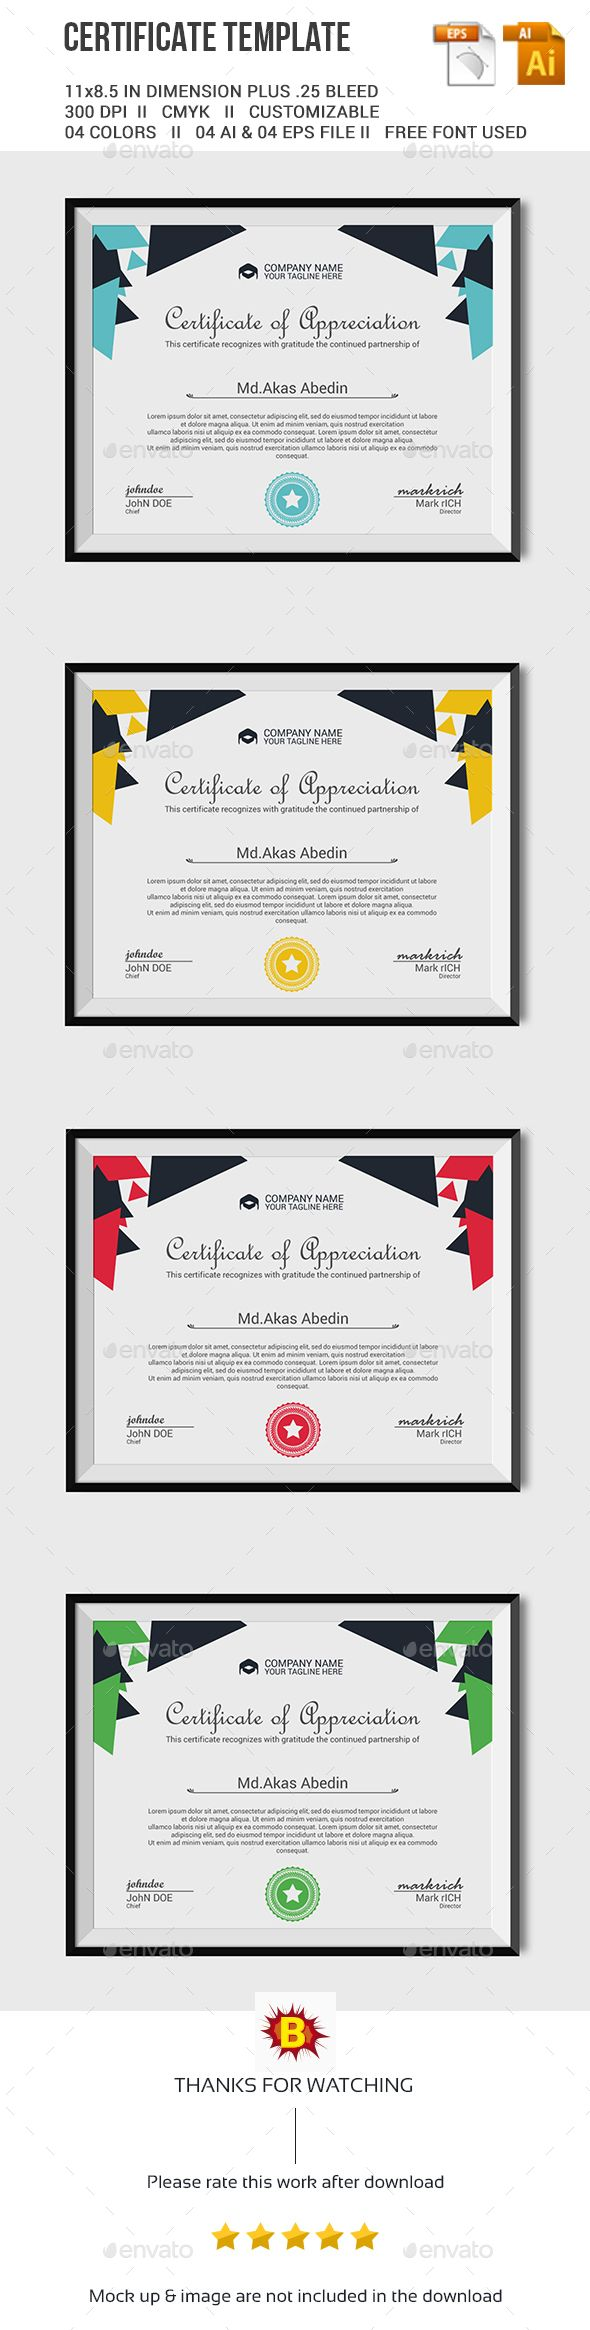 Certificate Template More